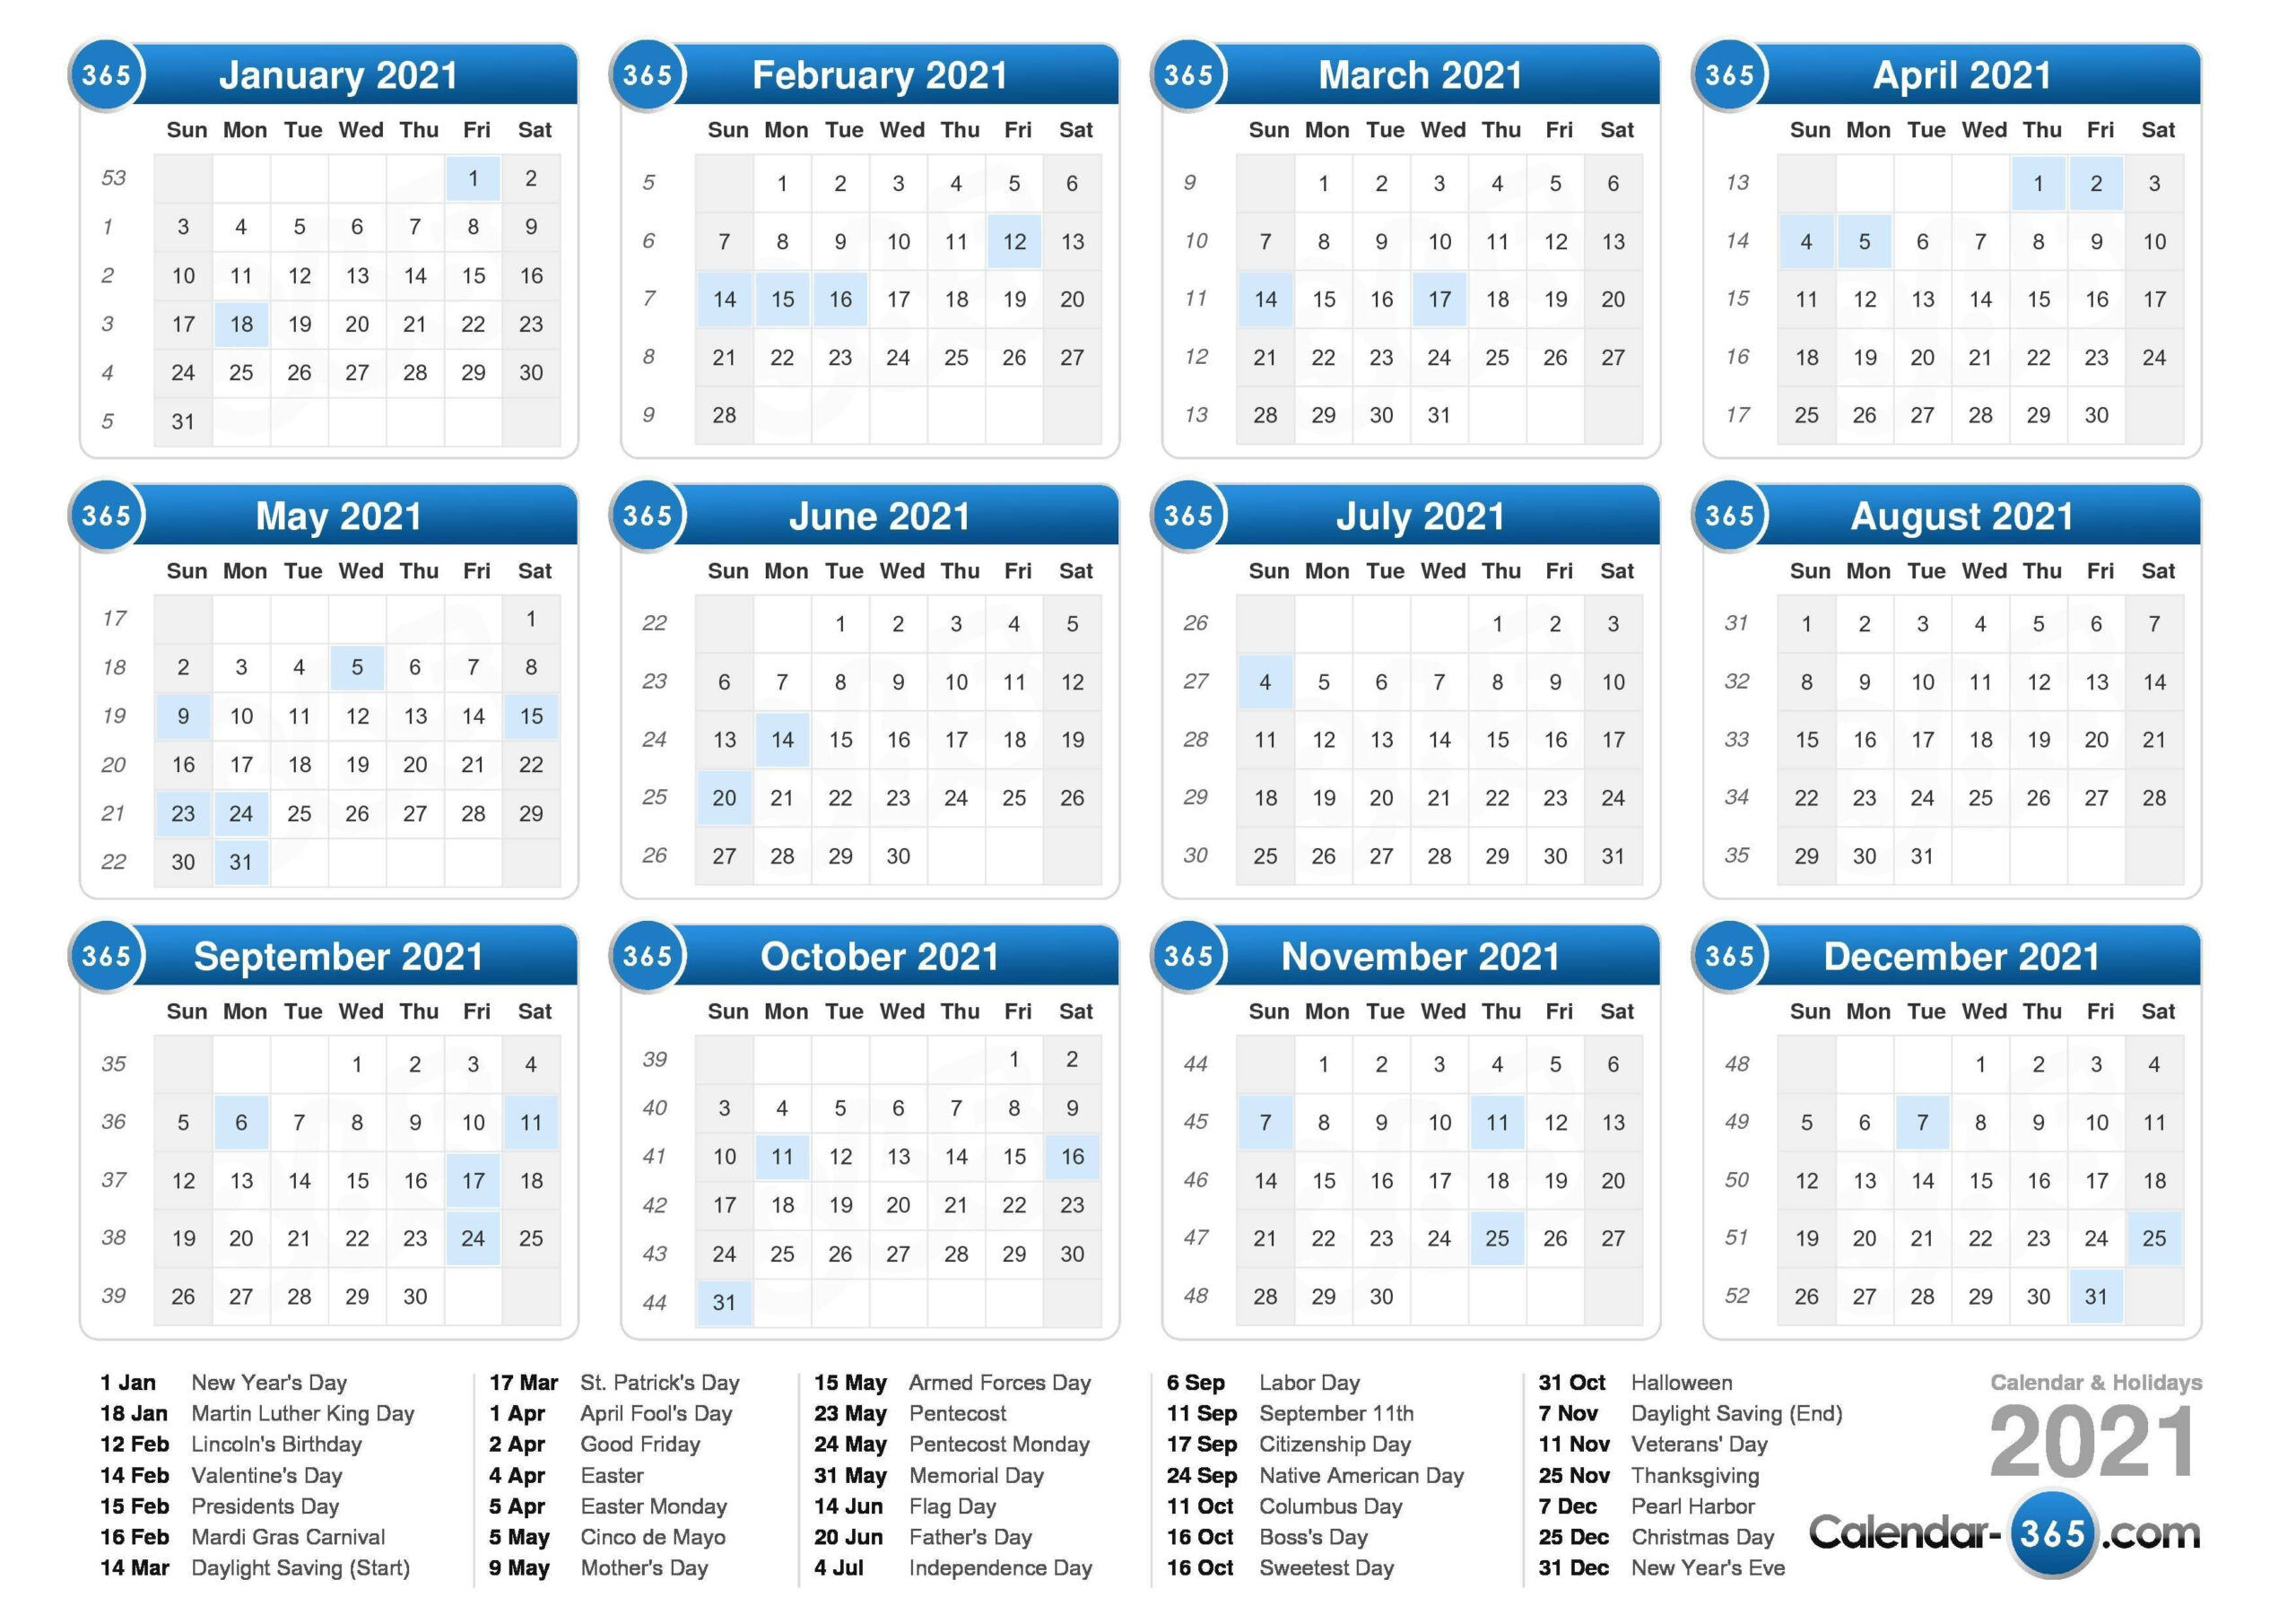 Free Printable Weekly Calendar 2021 – Delightful To Be Able